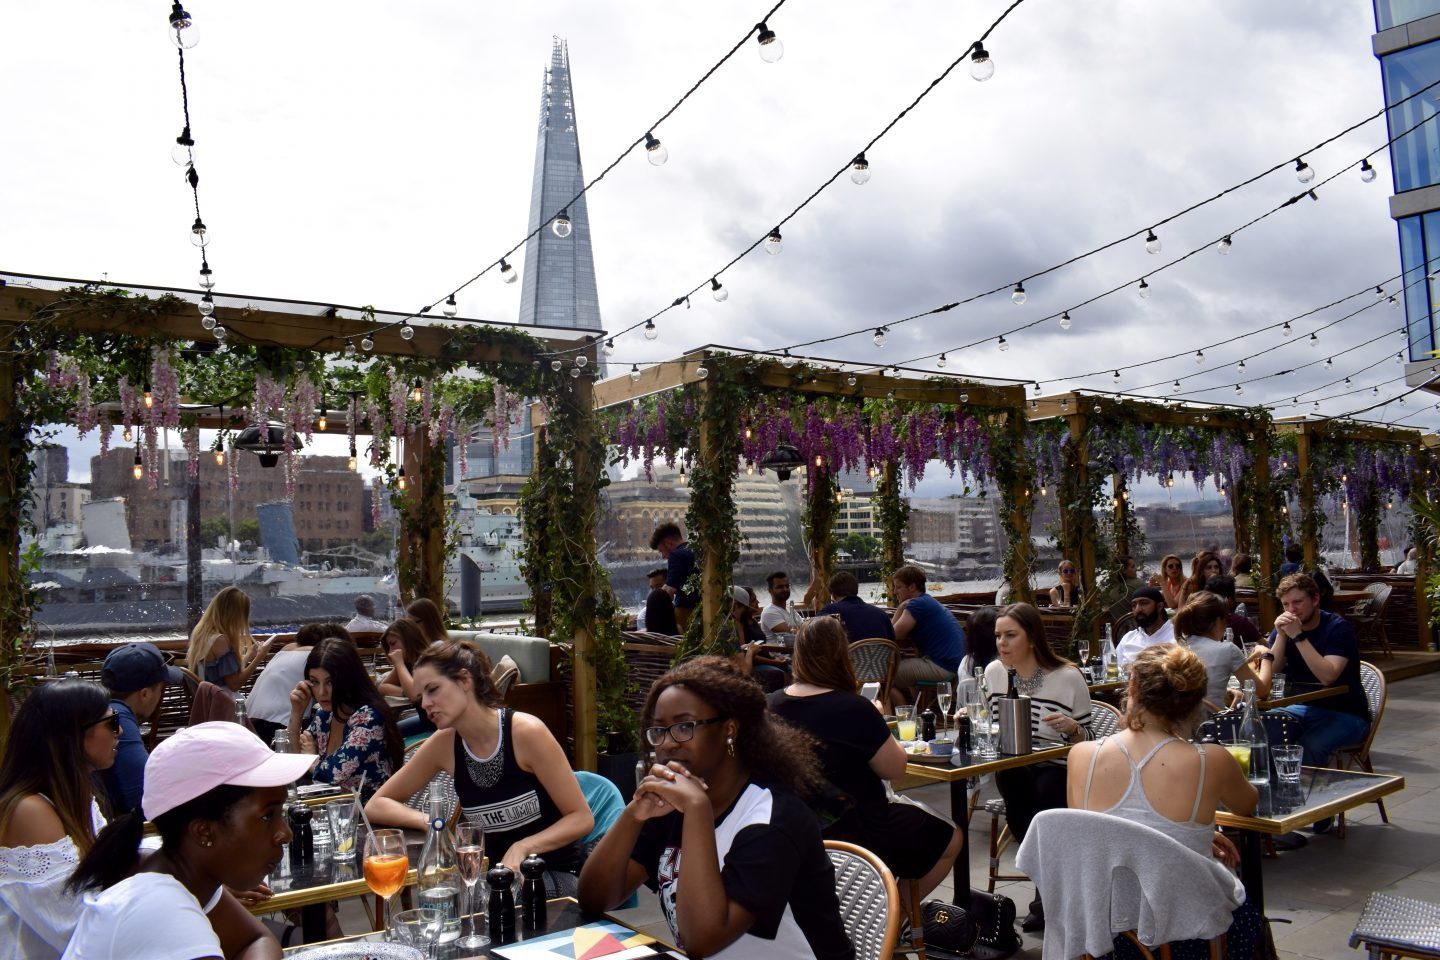 How to get the most out of London (on a budget)